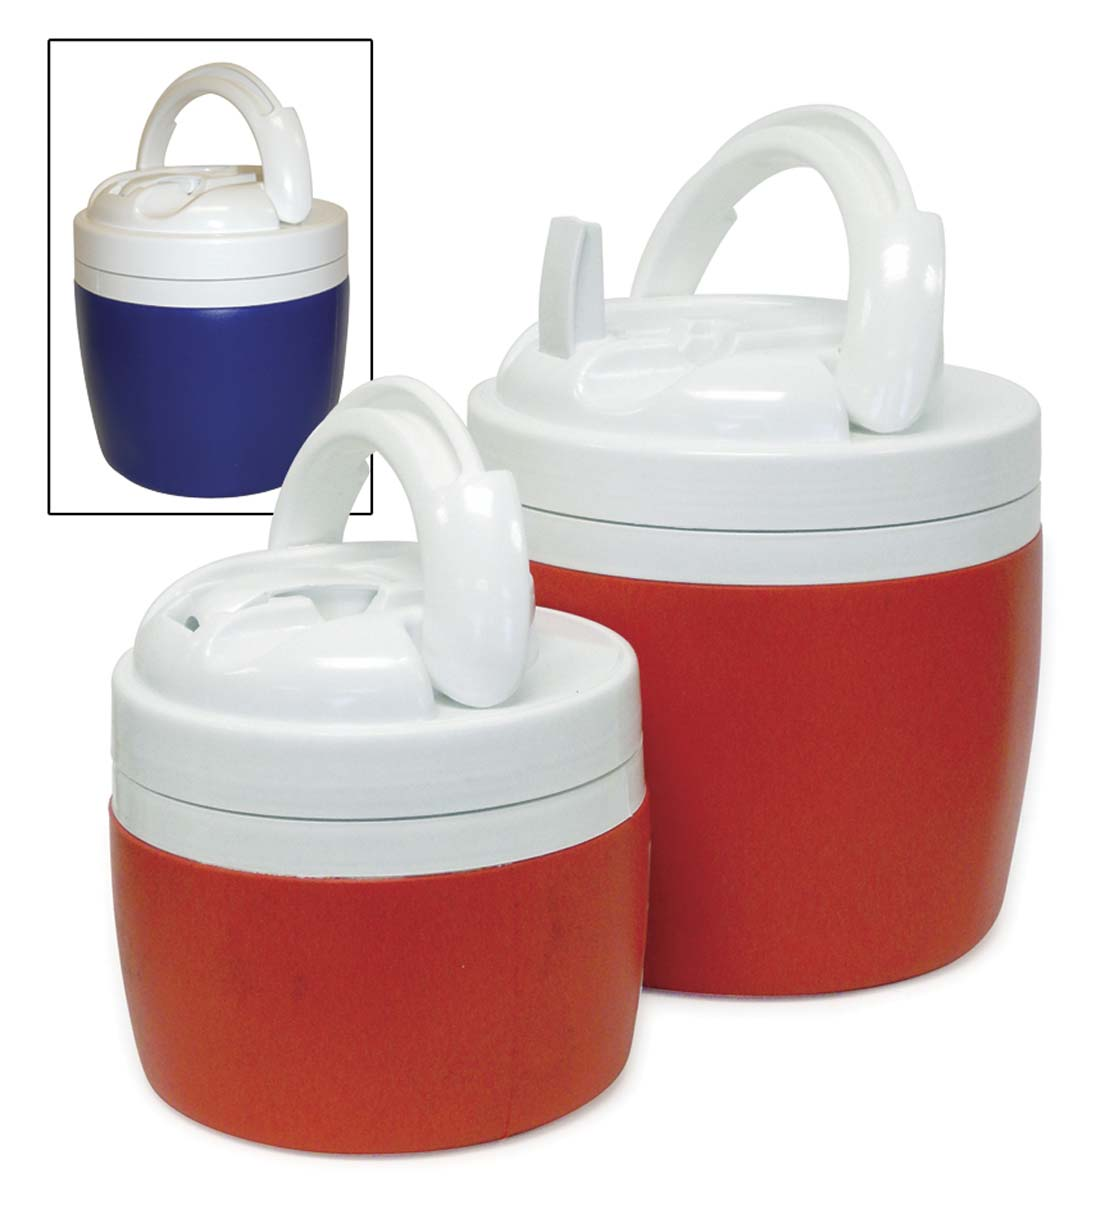 View INSULATED JUG SET 2 PC-1/2 GALLON & 1 GALLON ASSORTED COLORS